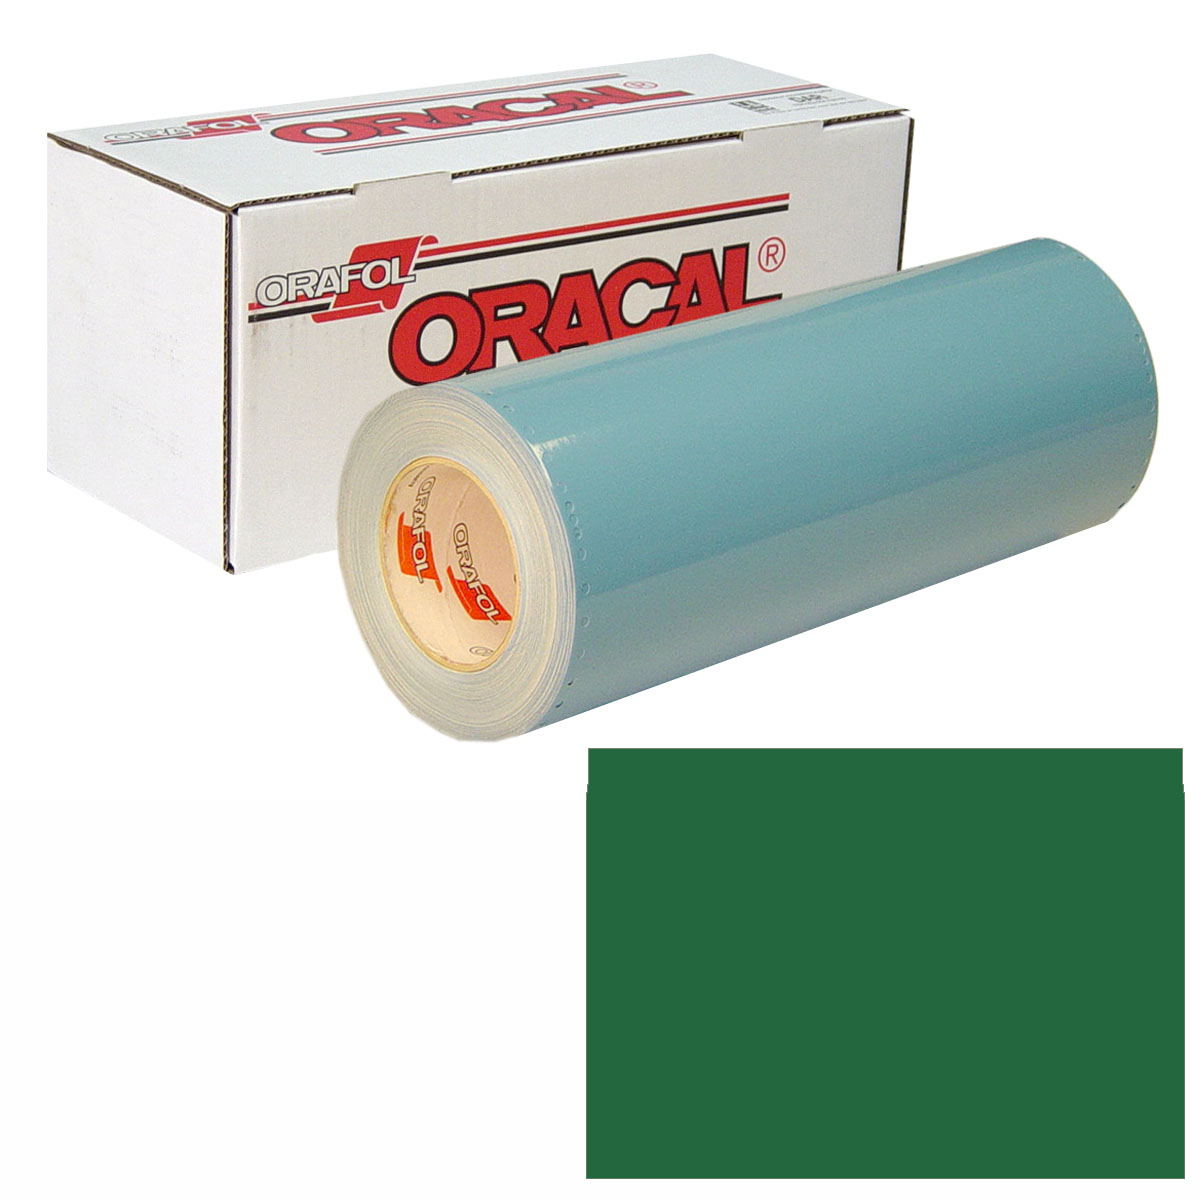 ORACAL 751 15In X 50Yd 078 Foliage Green